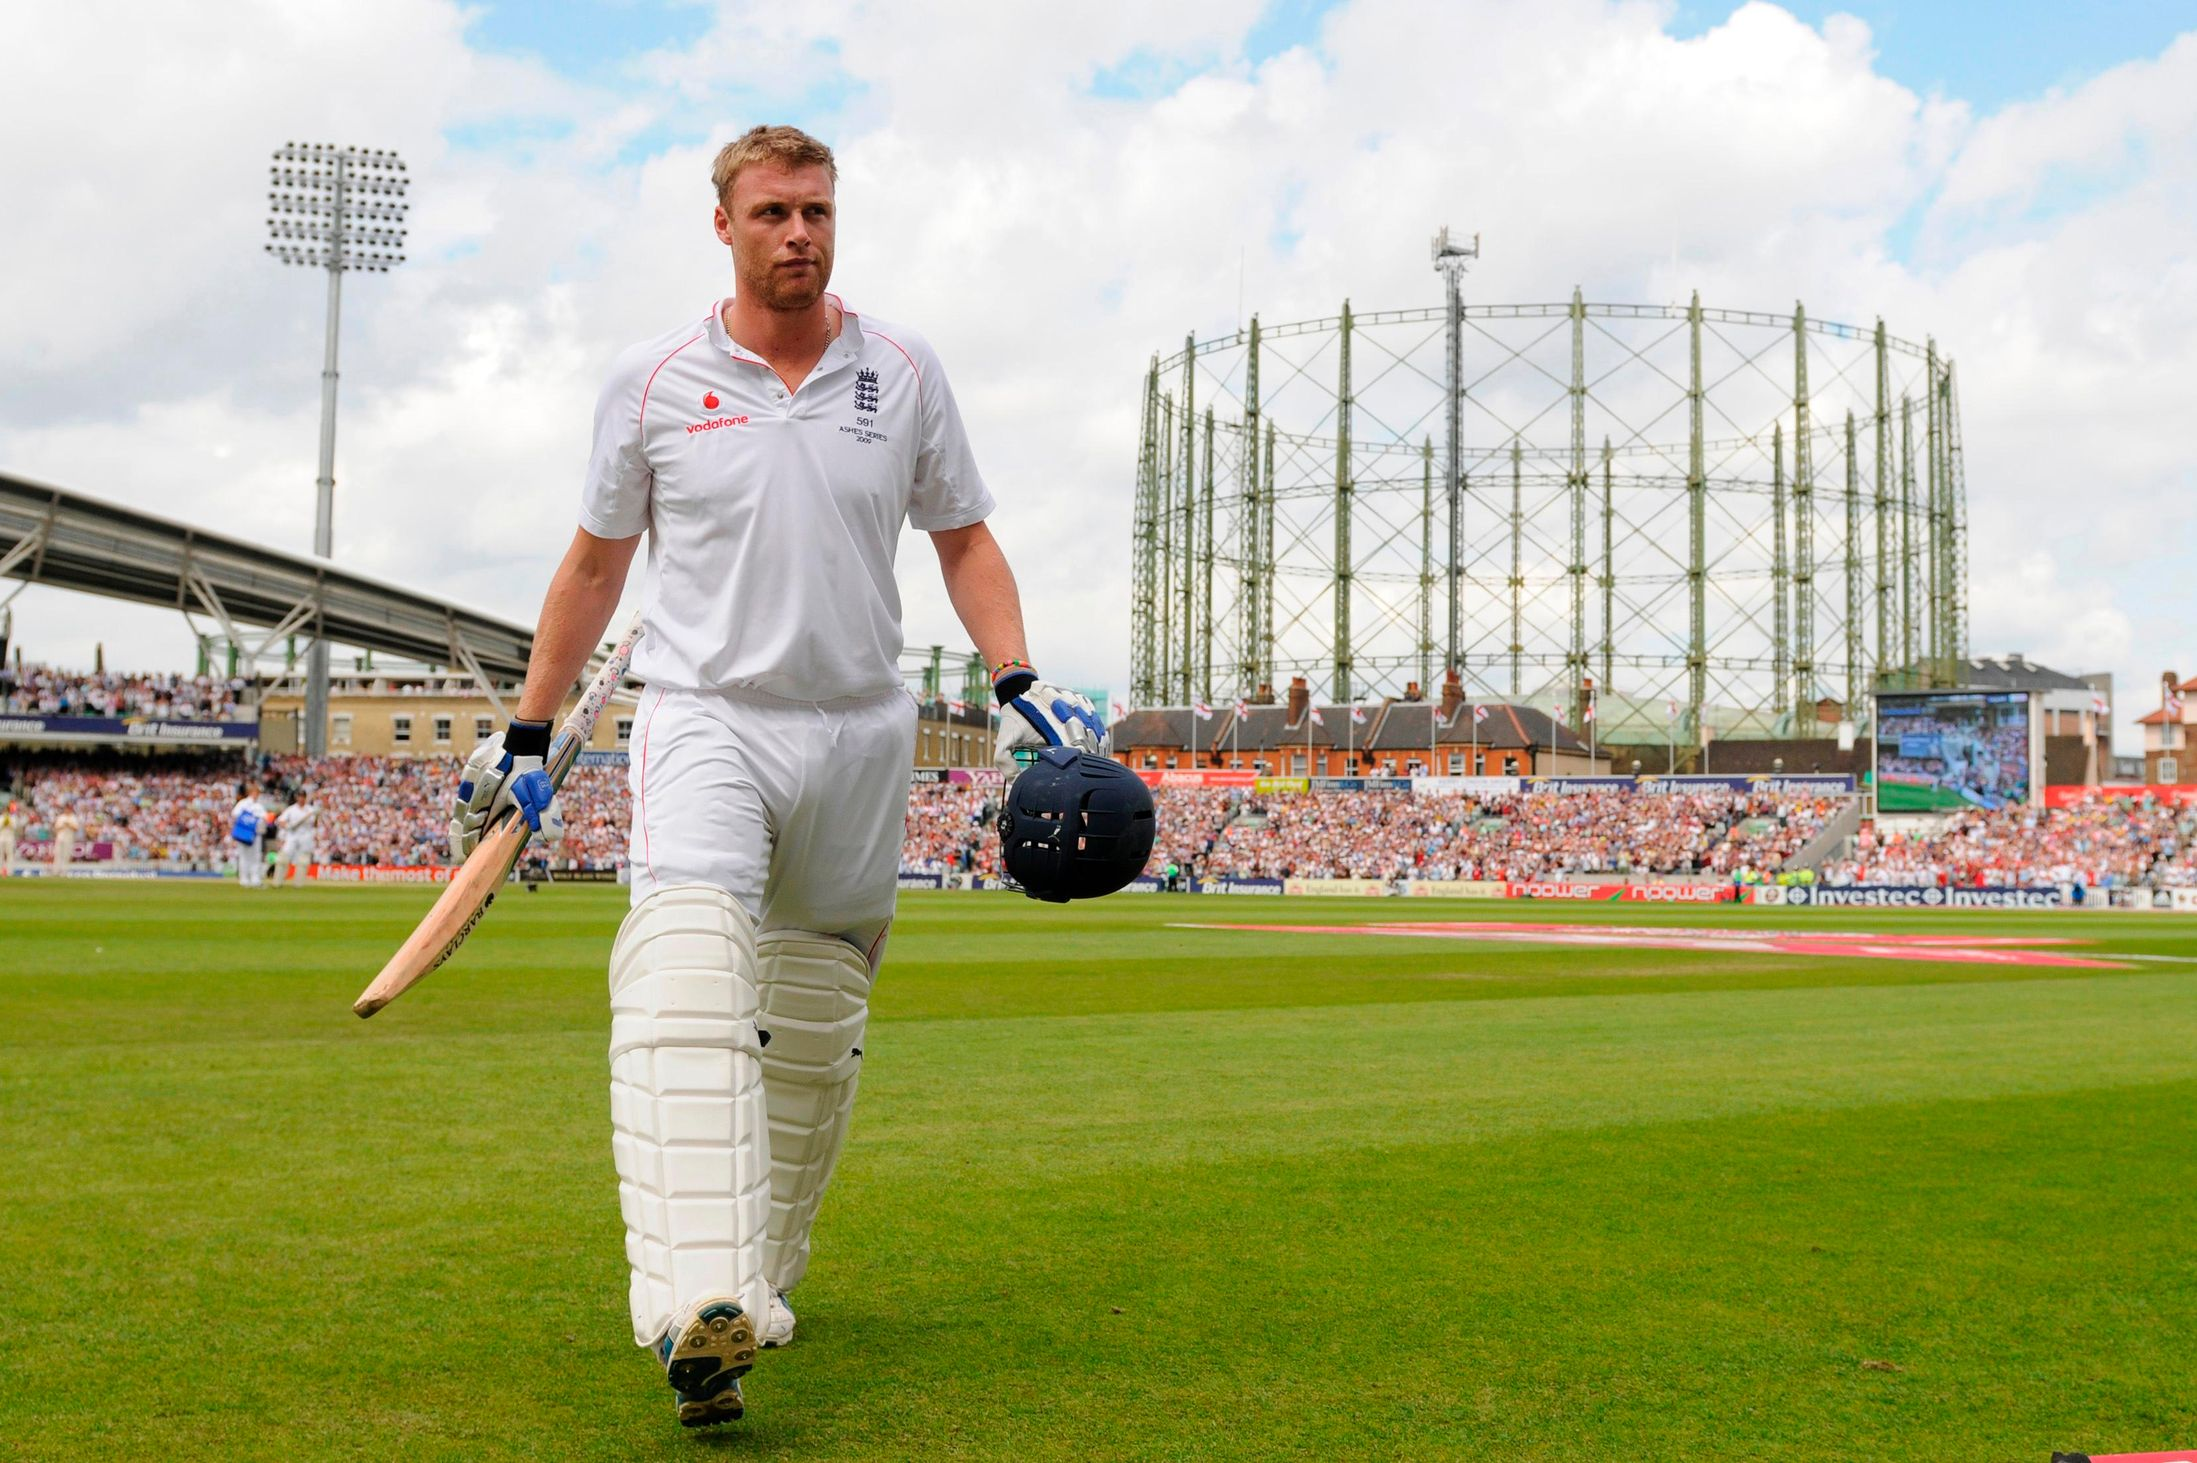 Andrew Flintoff returning back from pitch wearing full kit of cricket. He is holding his bat on one hand and helmet in another